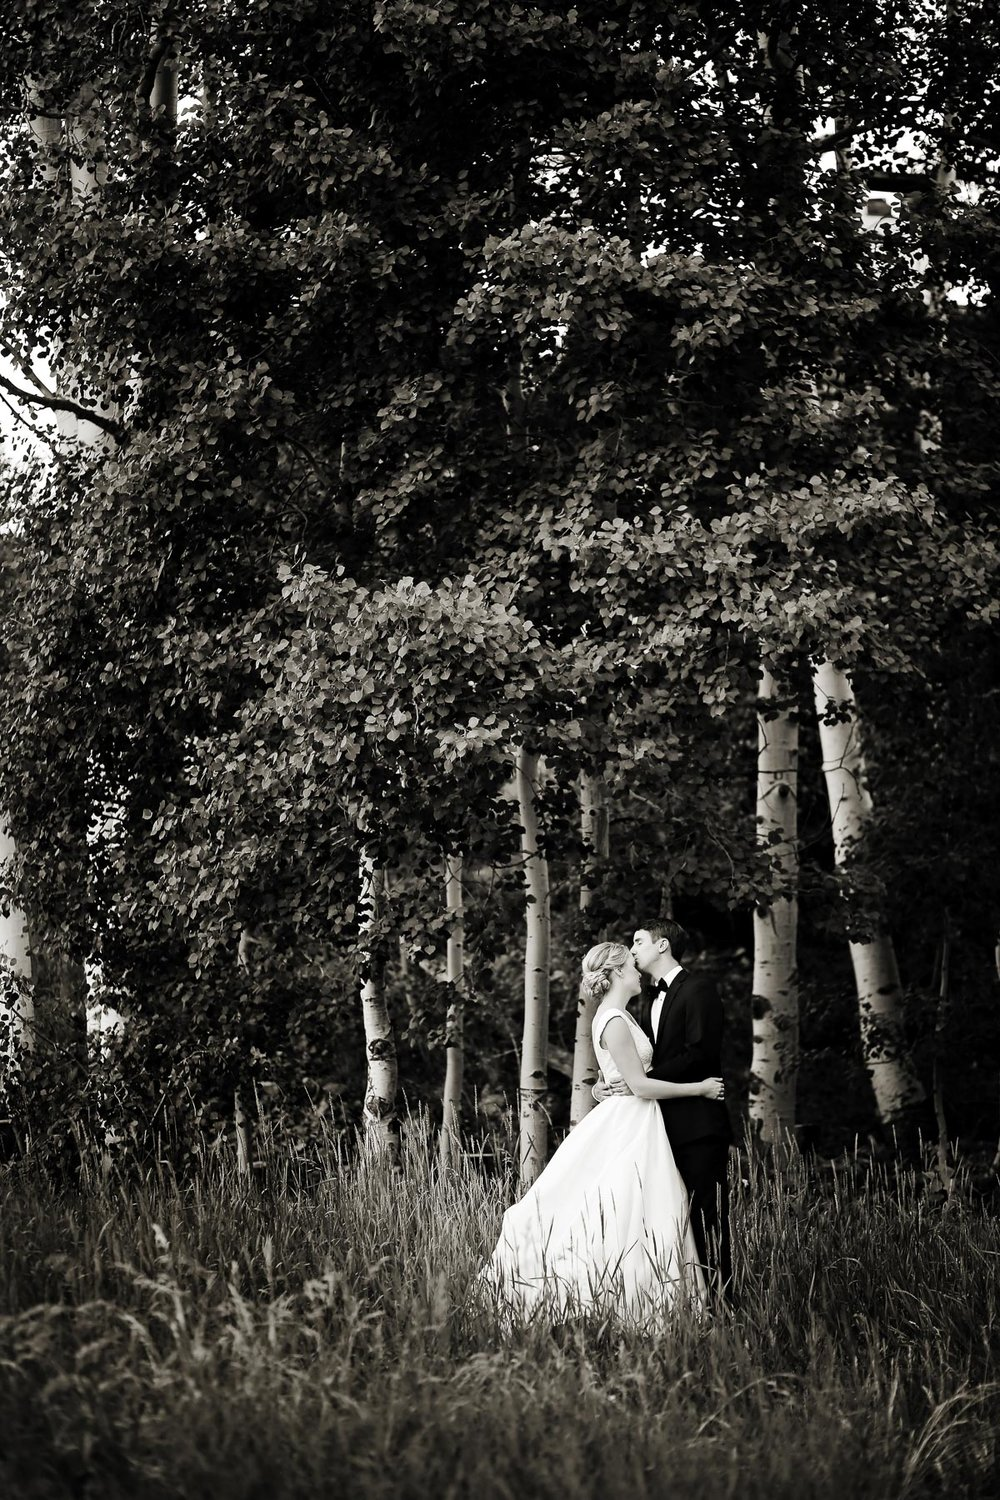 romantic-wedding-photos-aspen-trees-utah-weddings-pepper-nix-photography.jpg